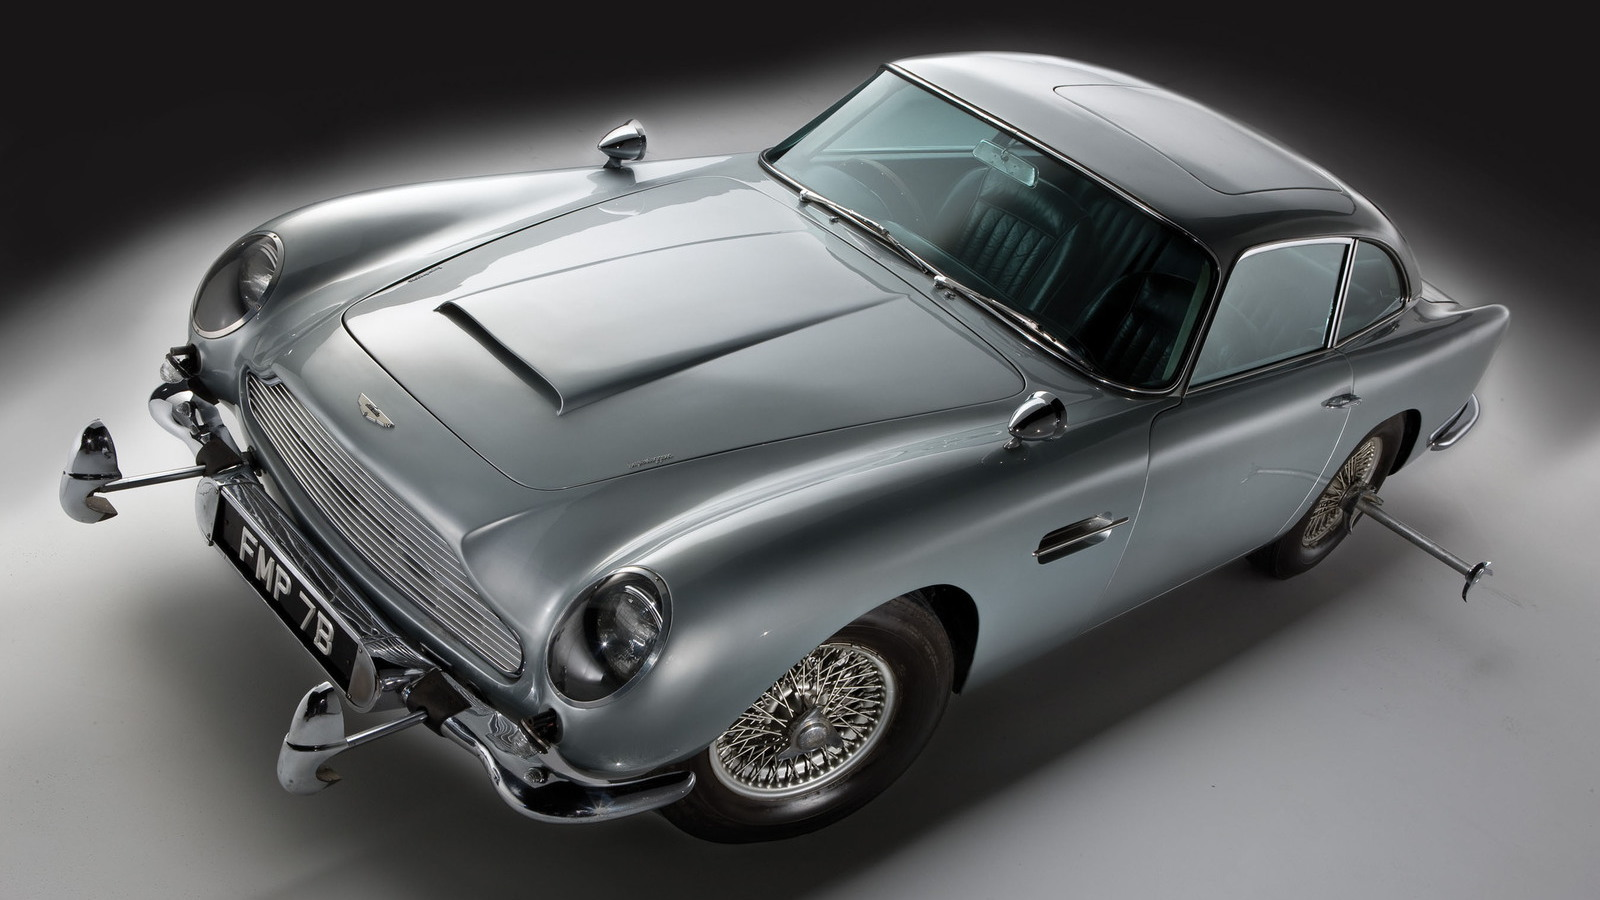 1964 Aston Martin DB5 James Bond movie car